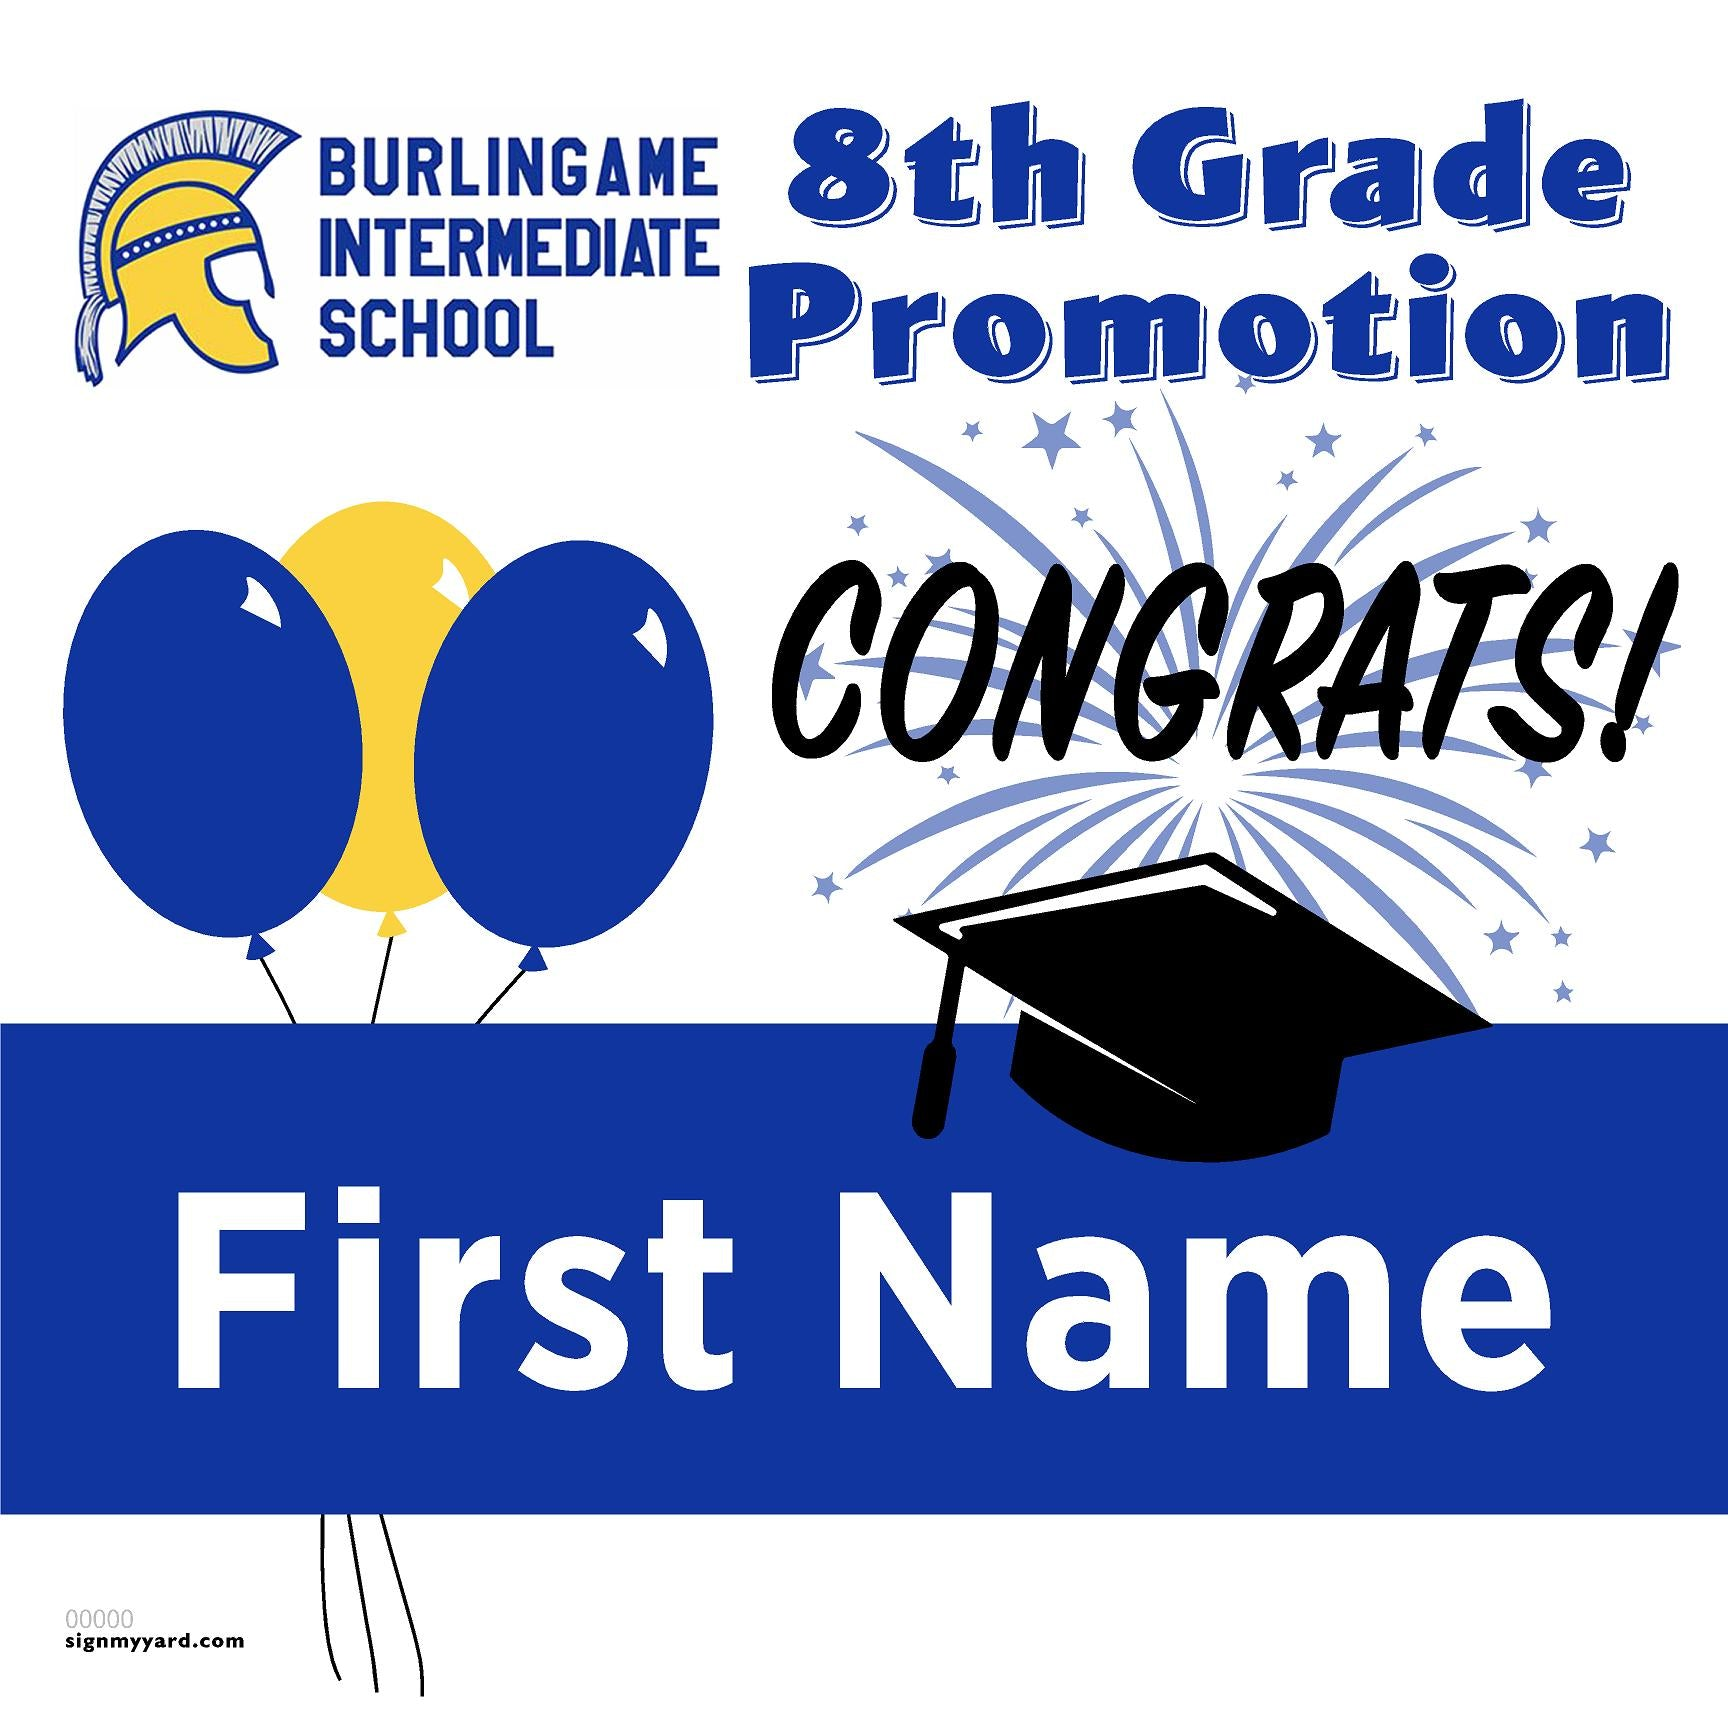 Burlingame Intermediate School 8th Grade Promotion 24x24 #shineon2024 Yard Sign (Option A)